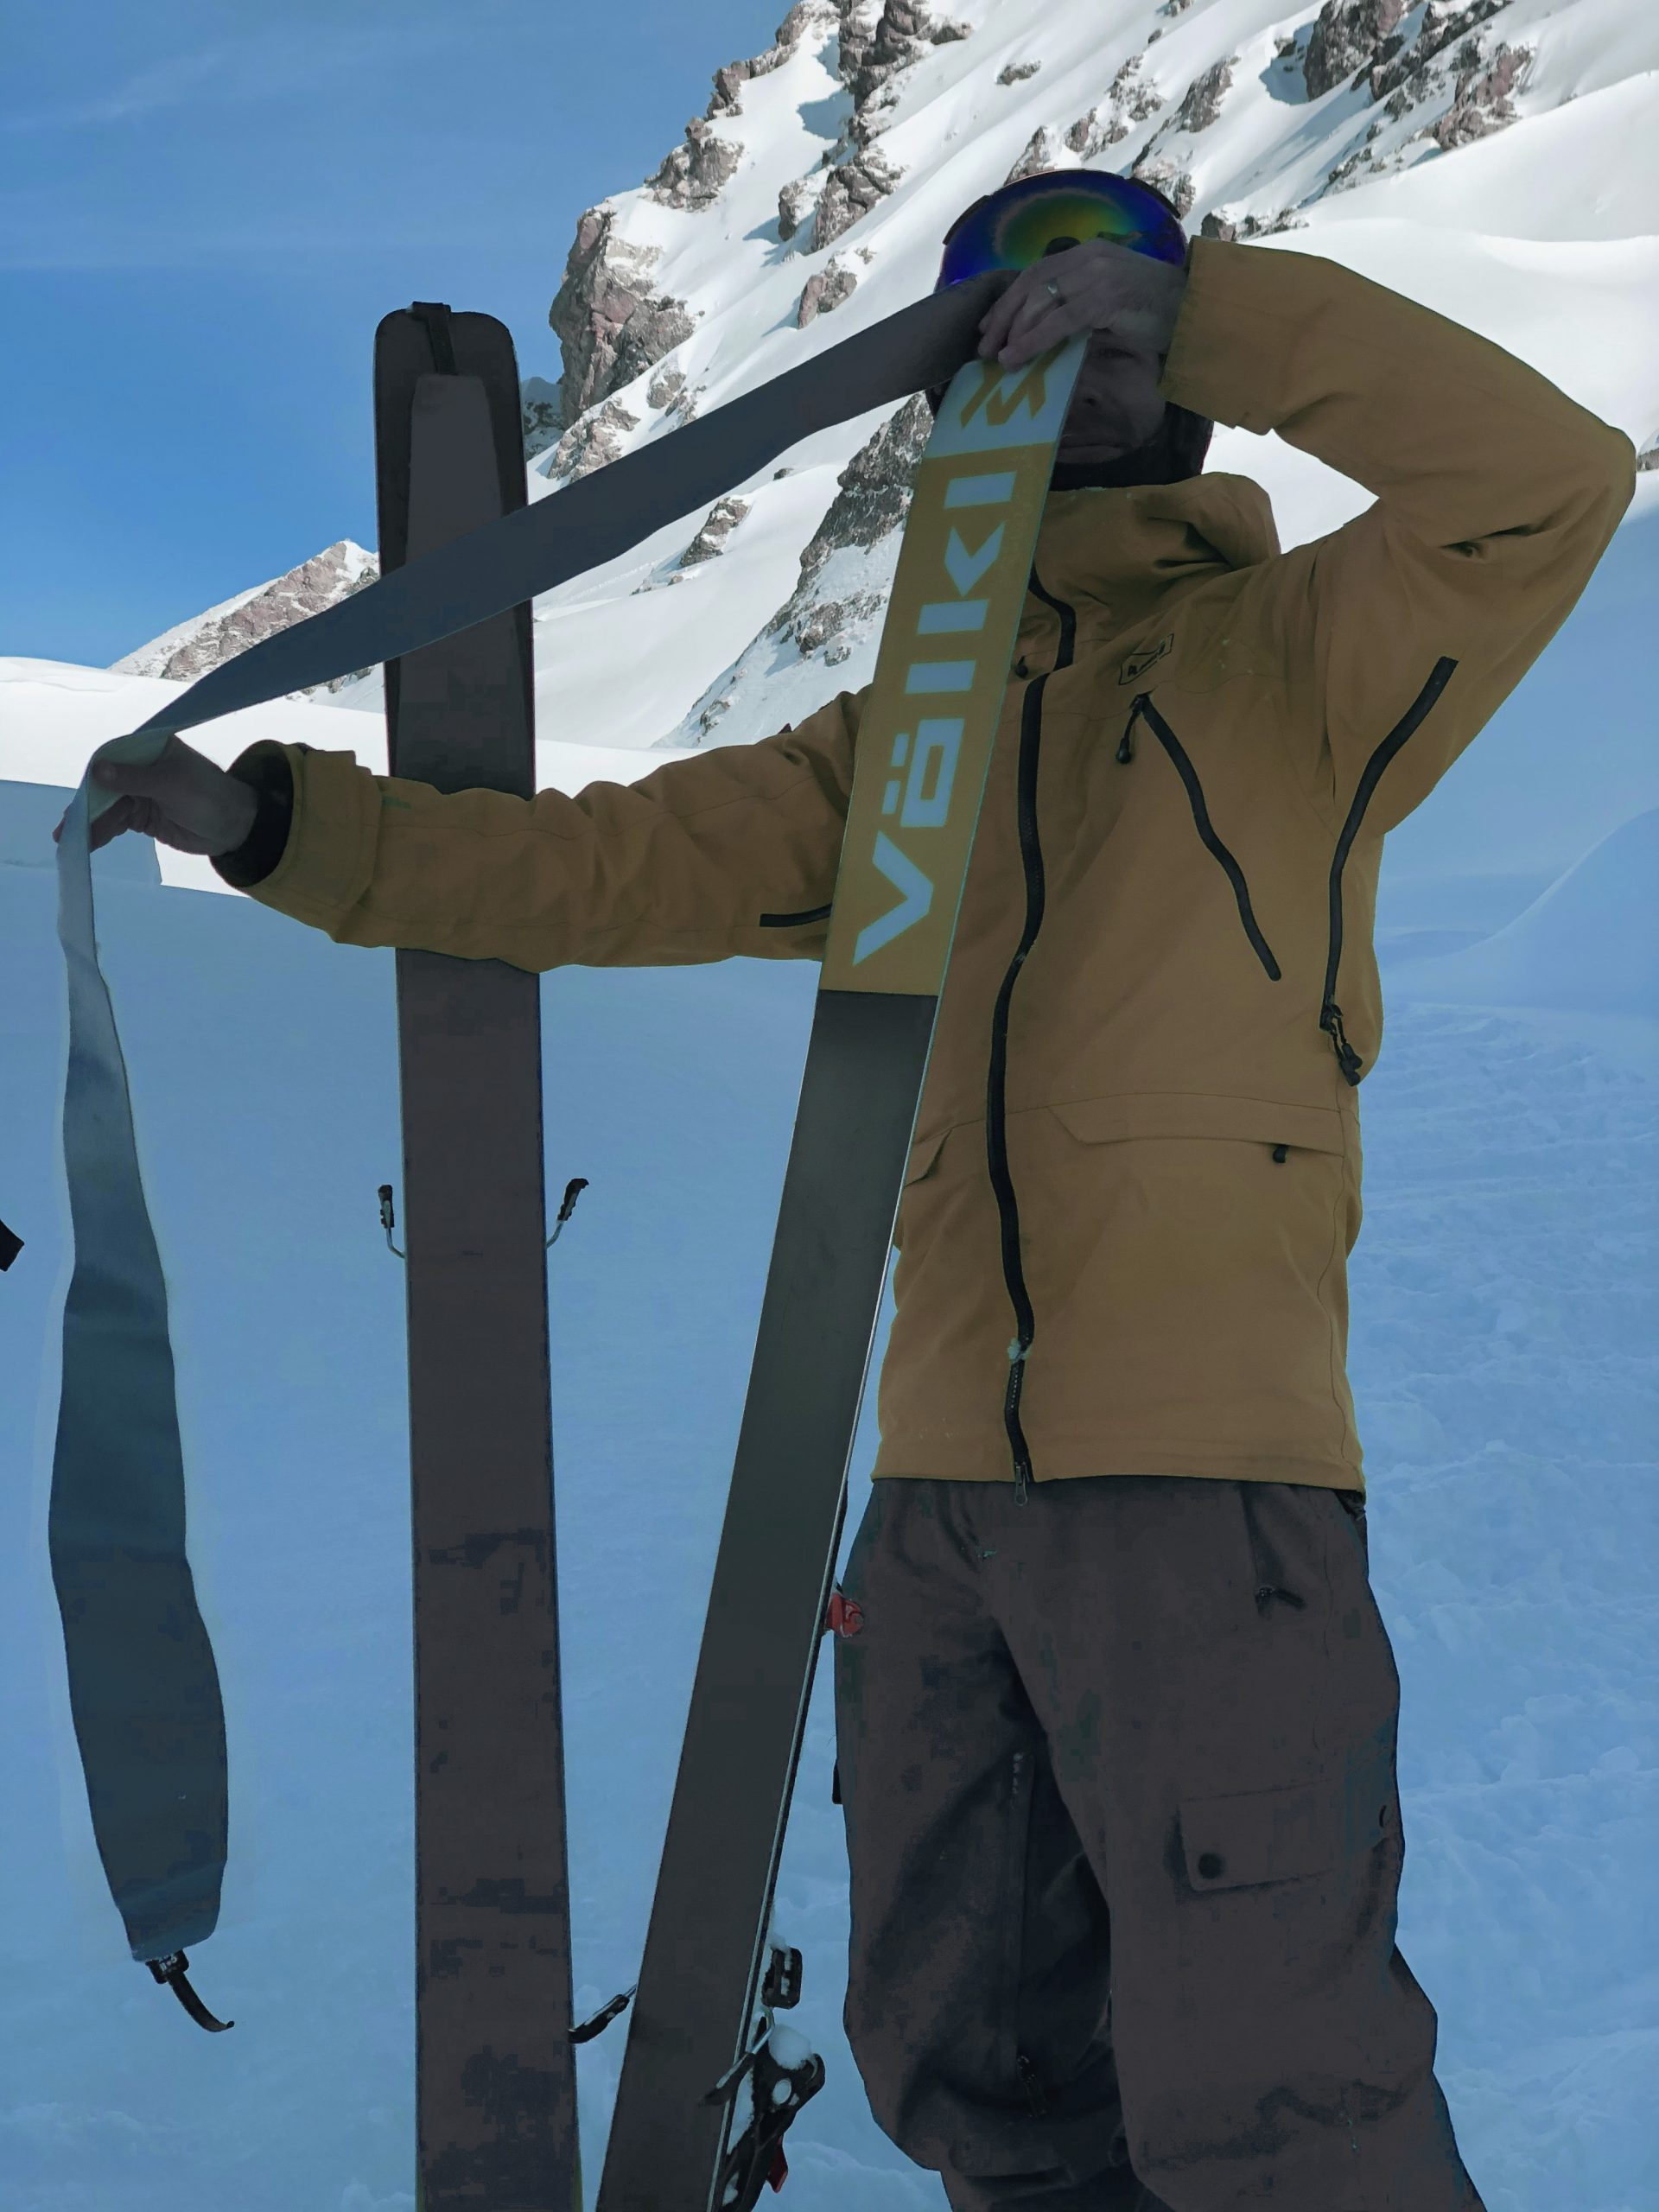 Touring skiing putting on skins off piste